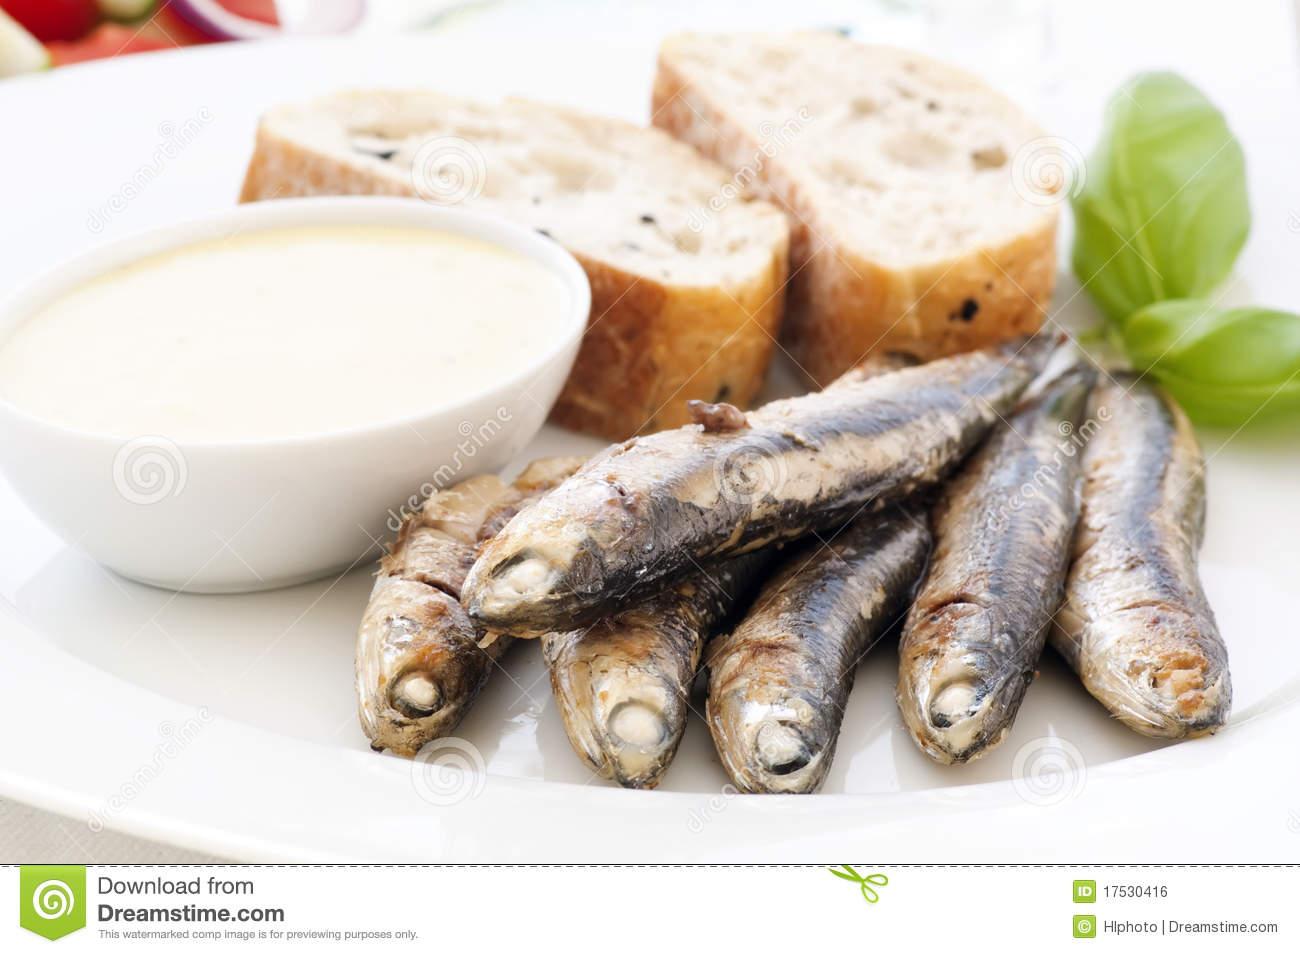 Grilled Anchovy Royalty Free Stock Image - Image: 17530416